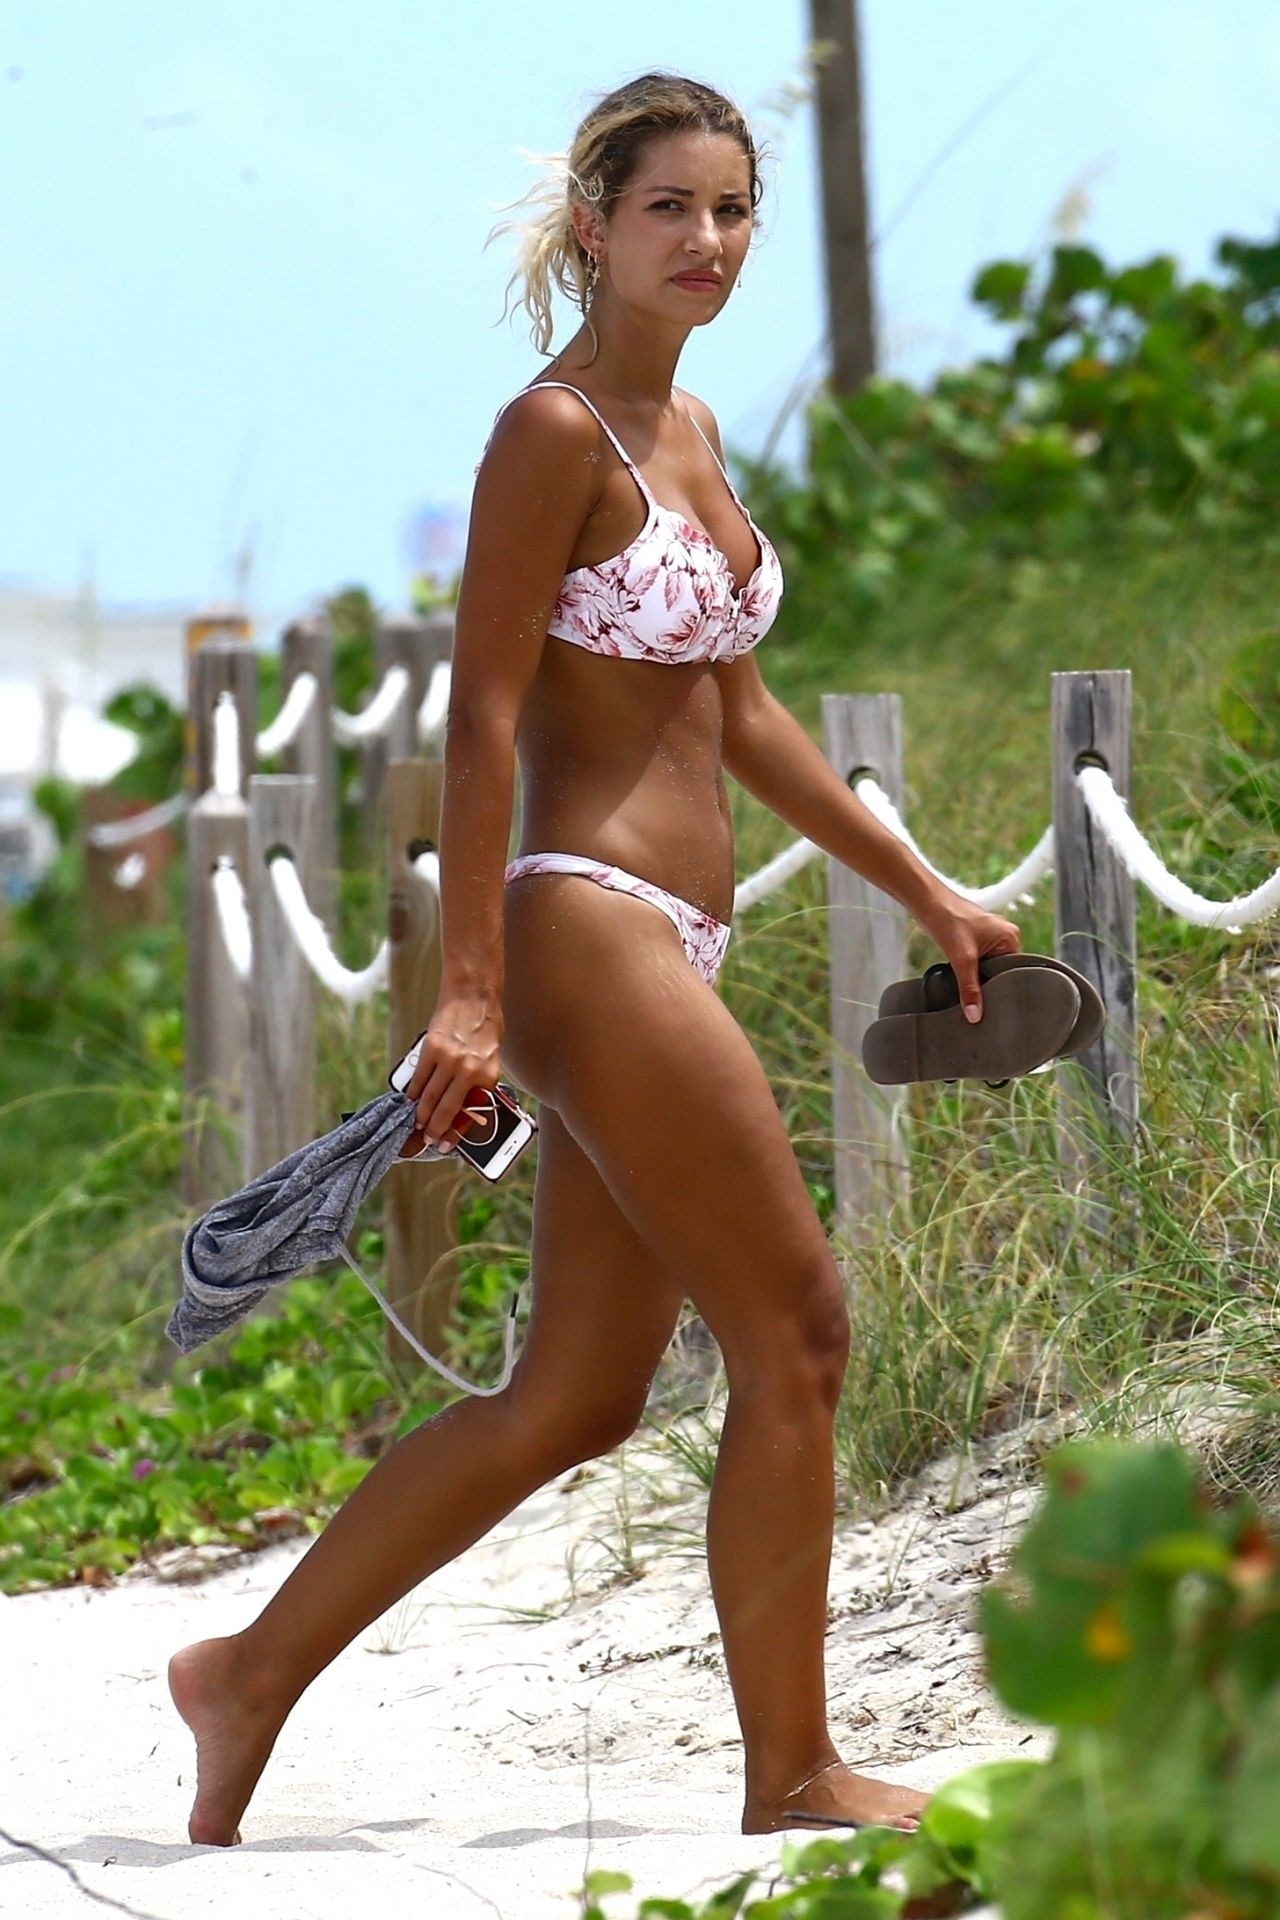 Sierra Skye In A Bikini Beach In Miami 07 19 2017